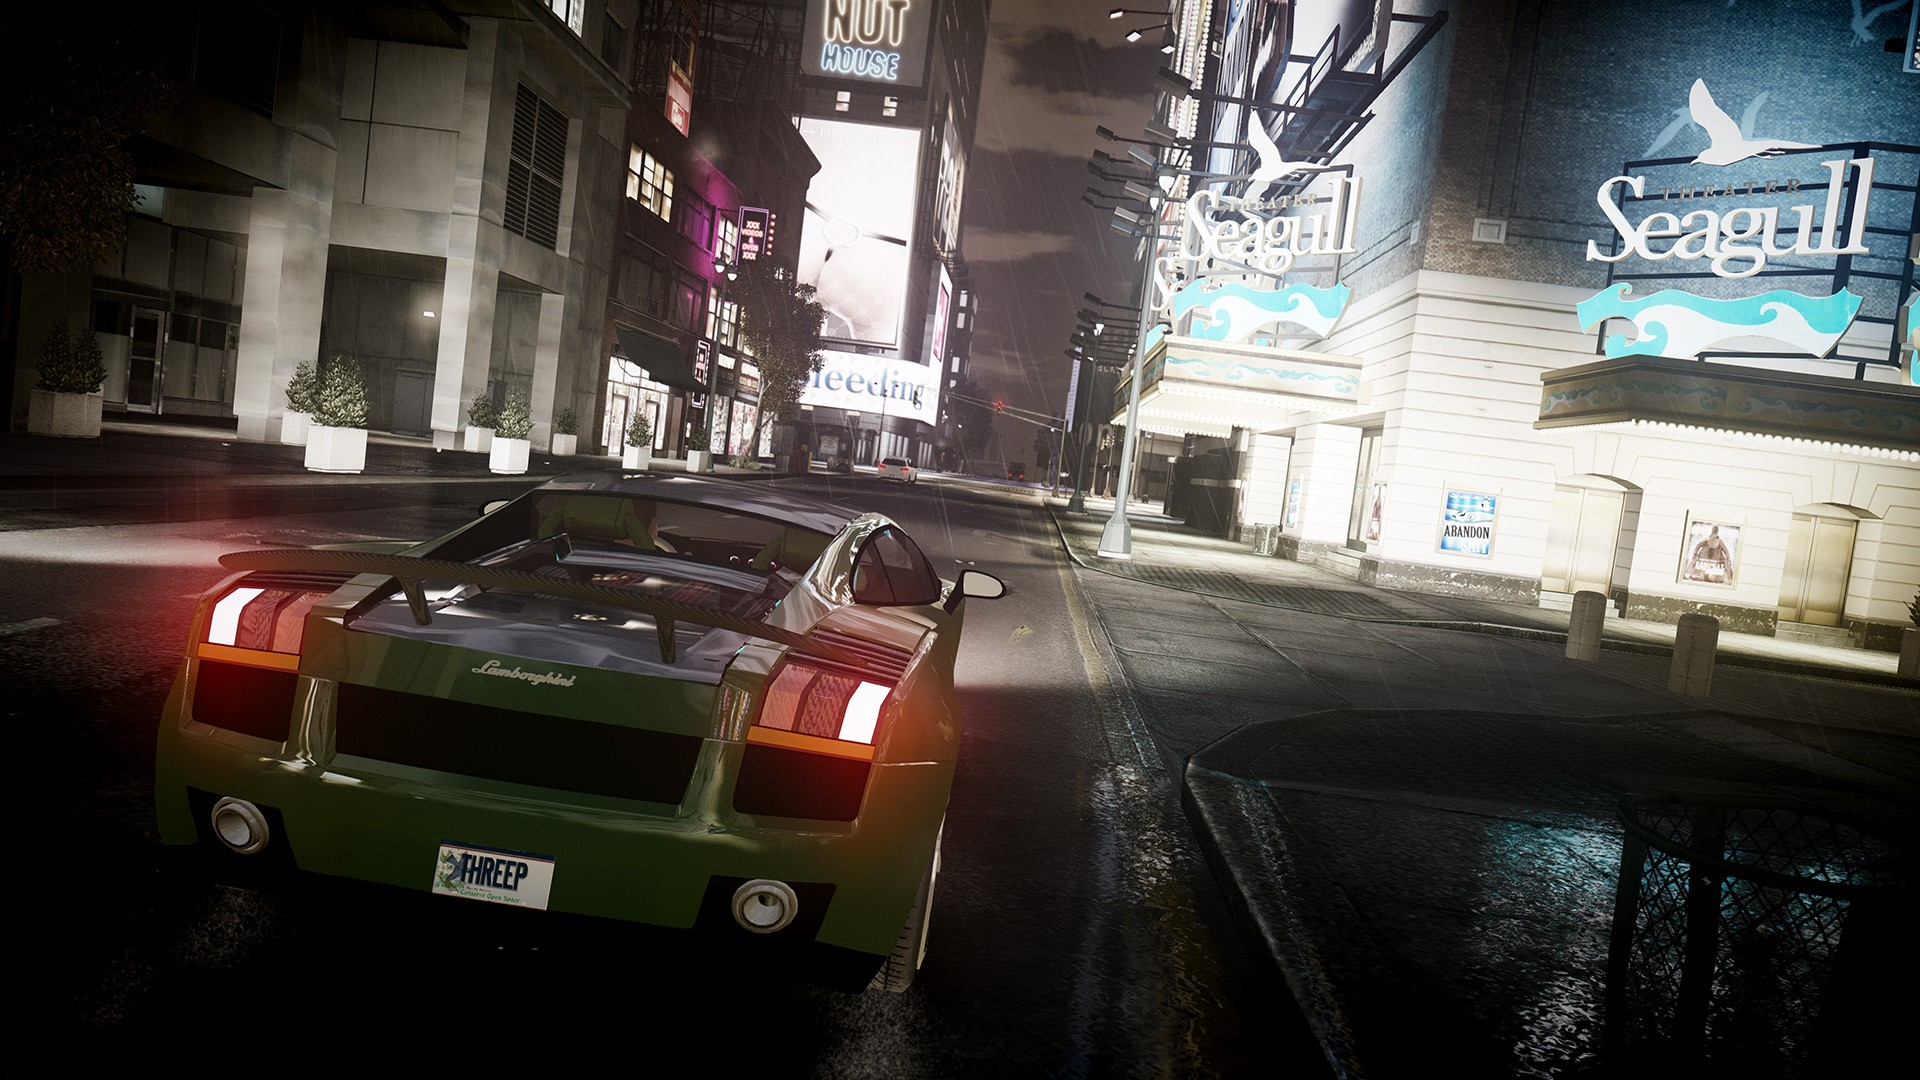 Car Wallpaper For Pc Gta Iv Gives Gta V Run For Its Money Via Mod